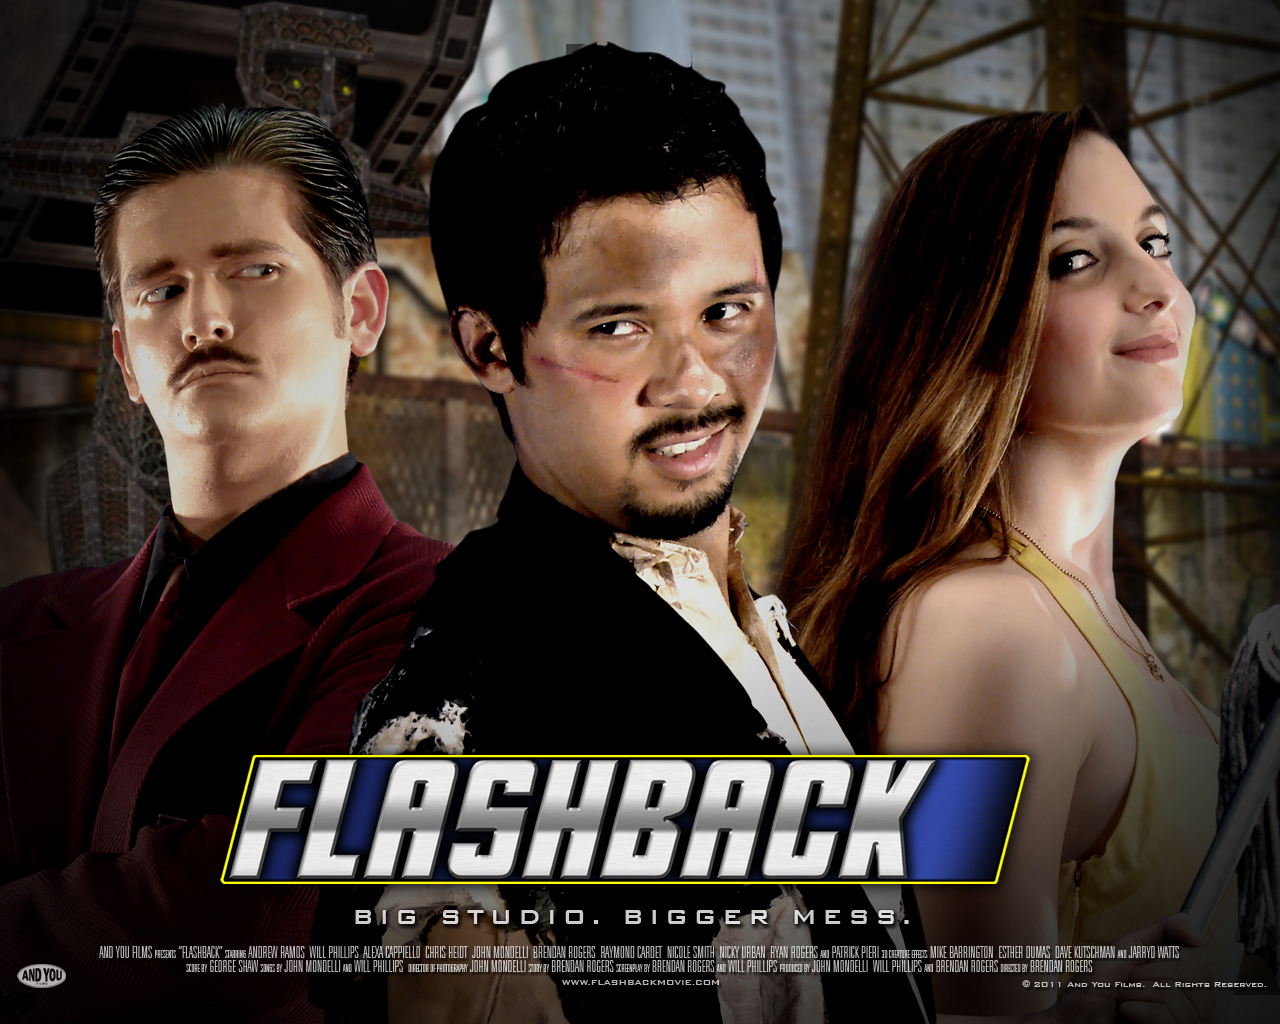 The Trailer for FLASHBACK has Movies Spoofs, Sci-Fi, and Good Low Budget Effects